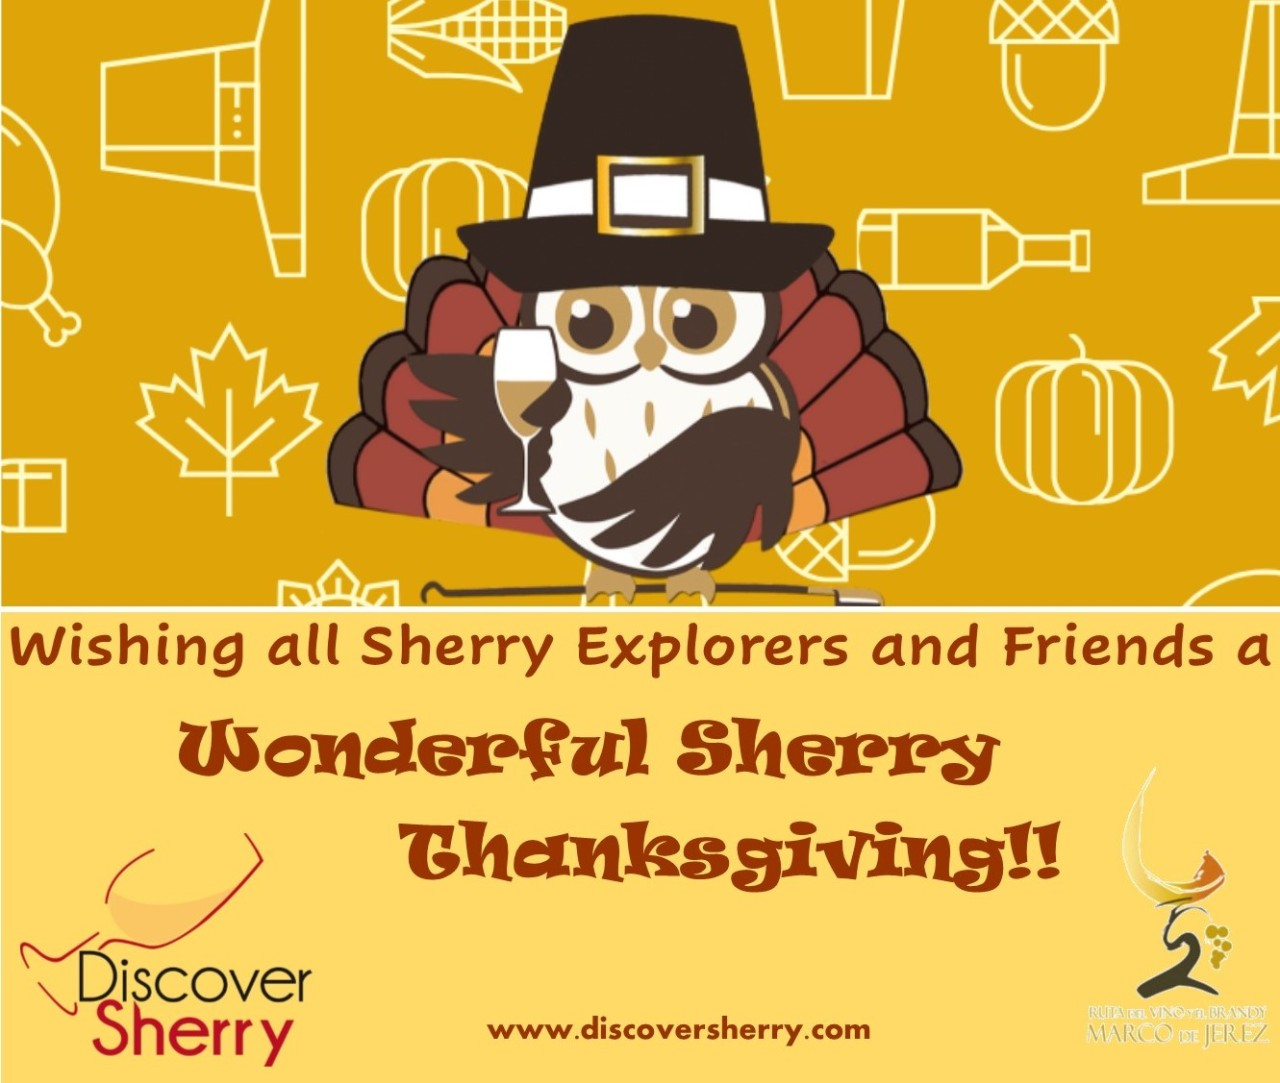 Happy Sherry Thanksgiving!!